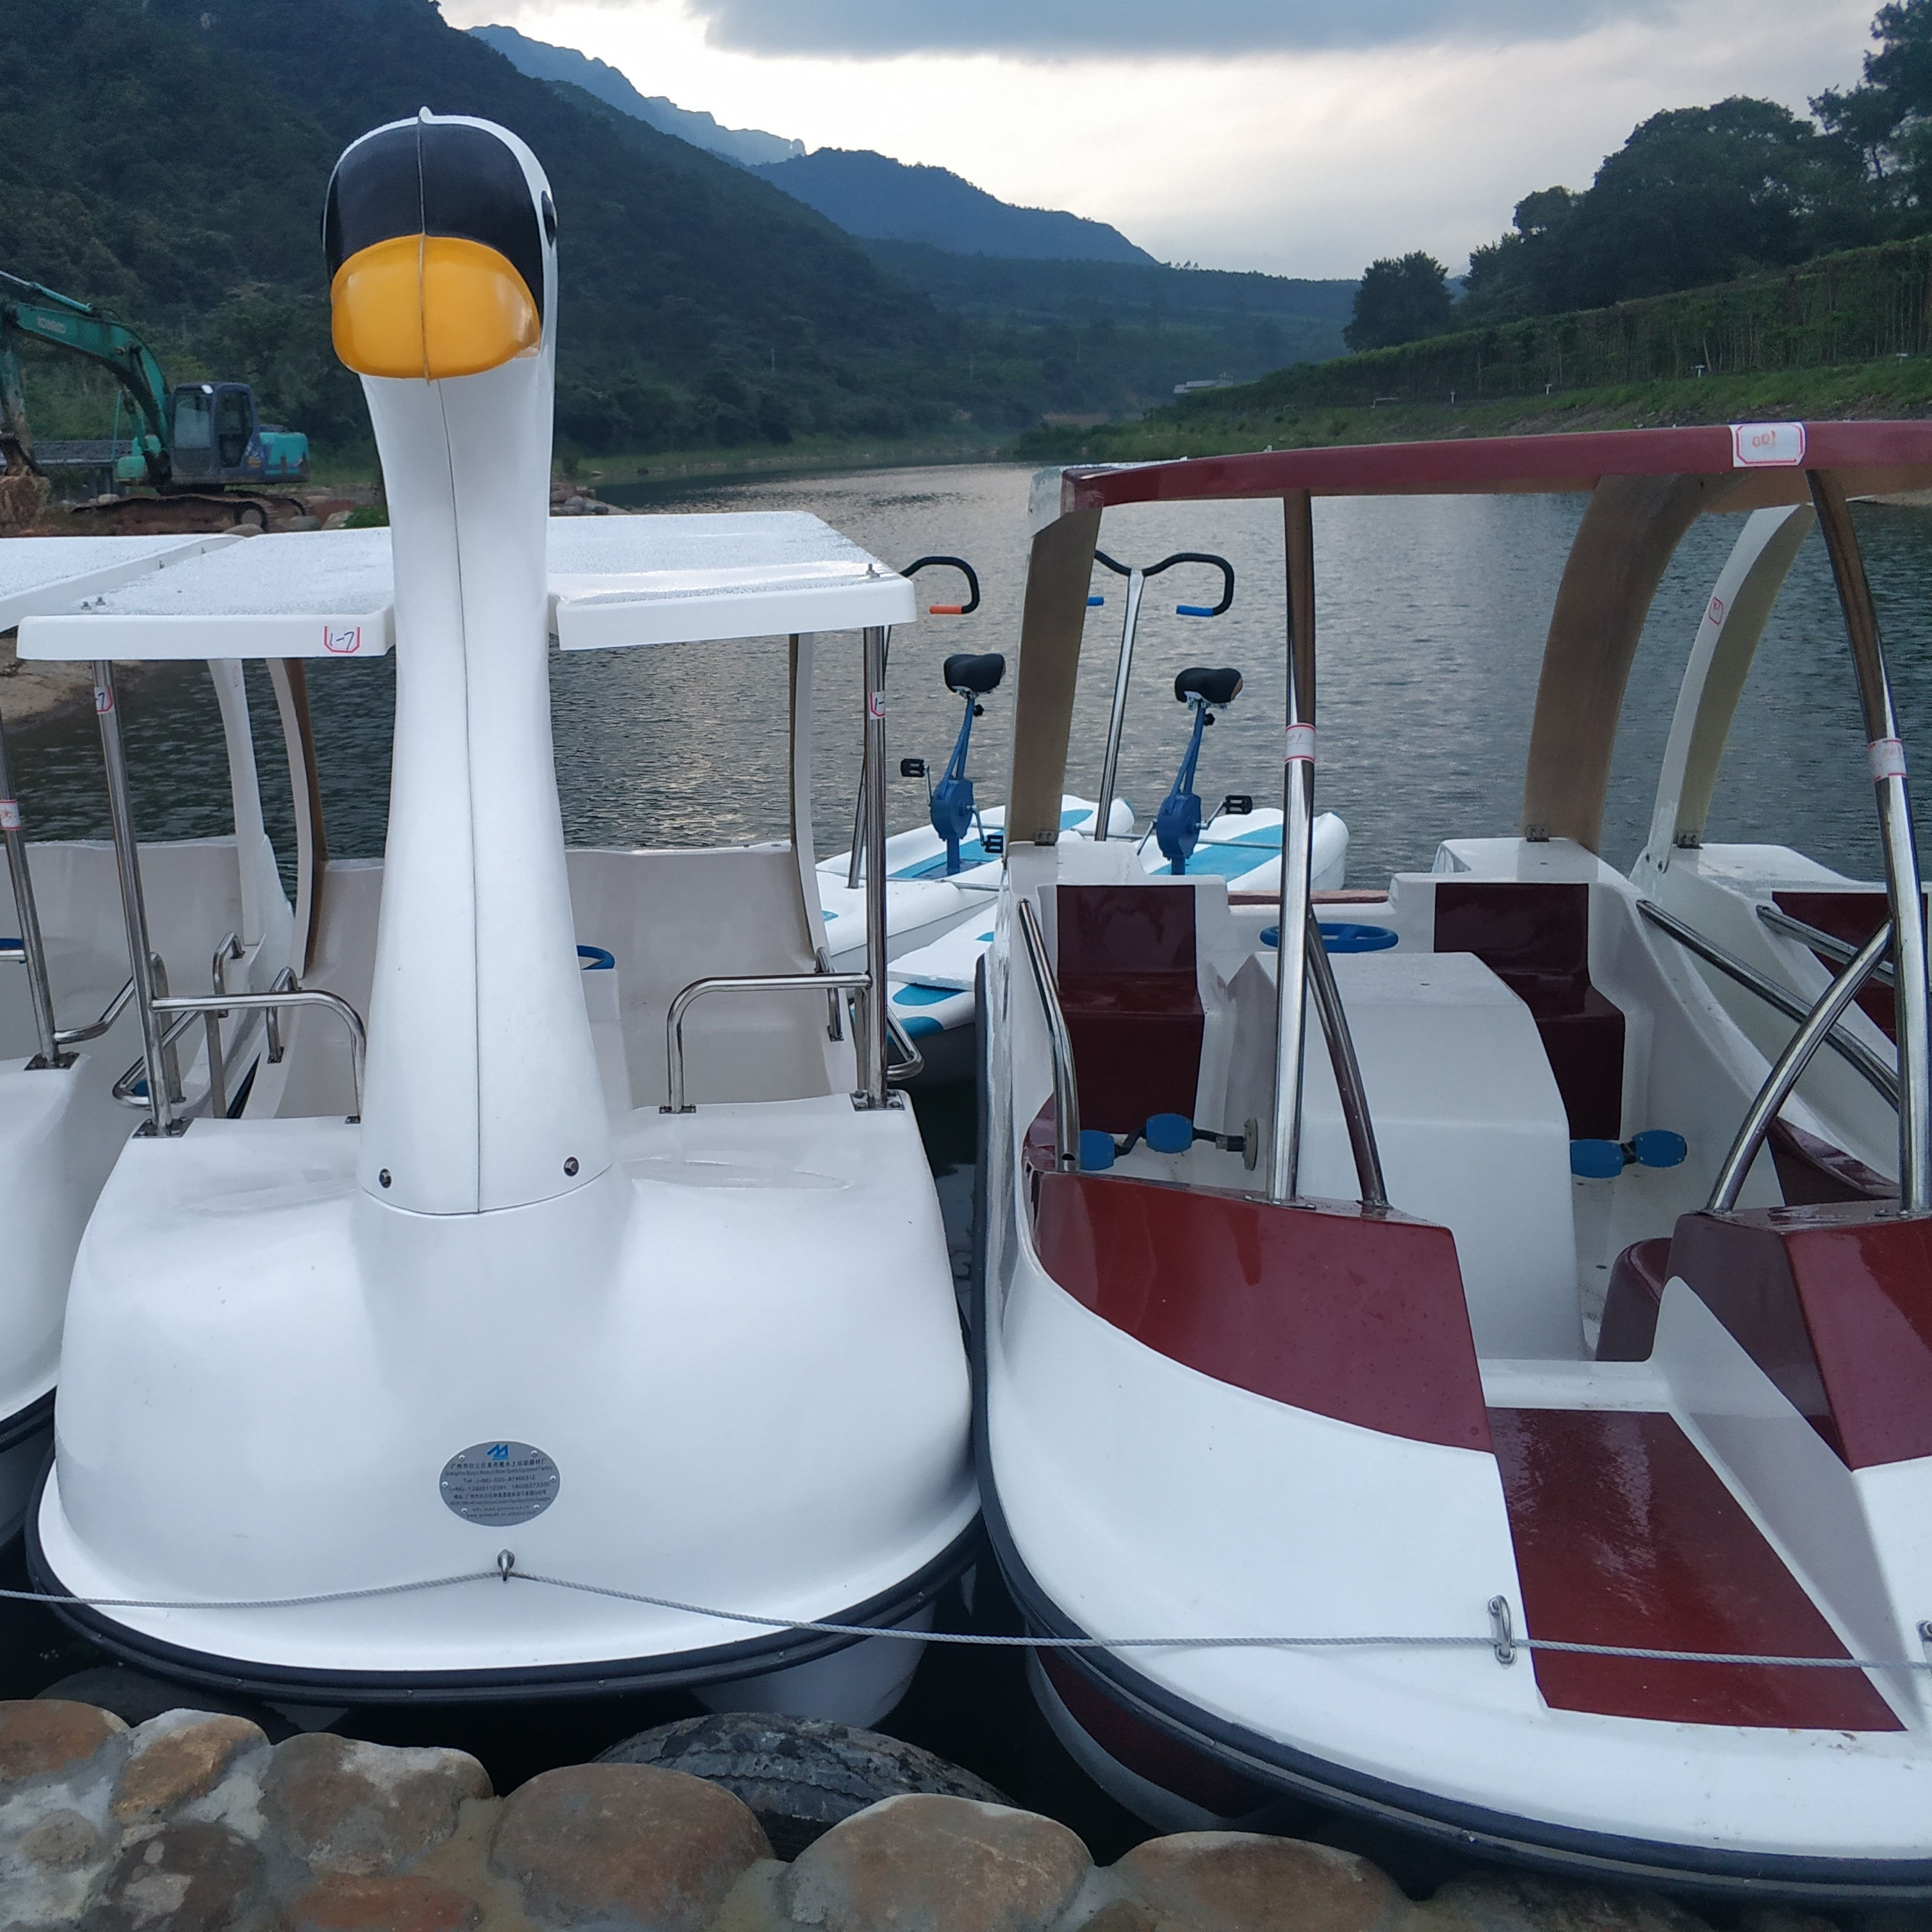 New design Sea lake 304 stainless steel hardware FRP swan boat thick fiberglass pedal boat for sale